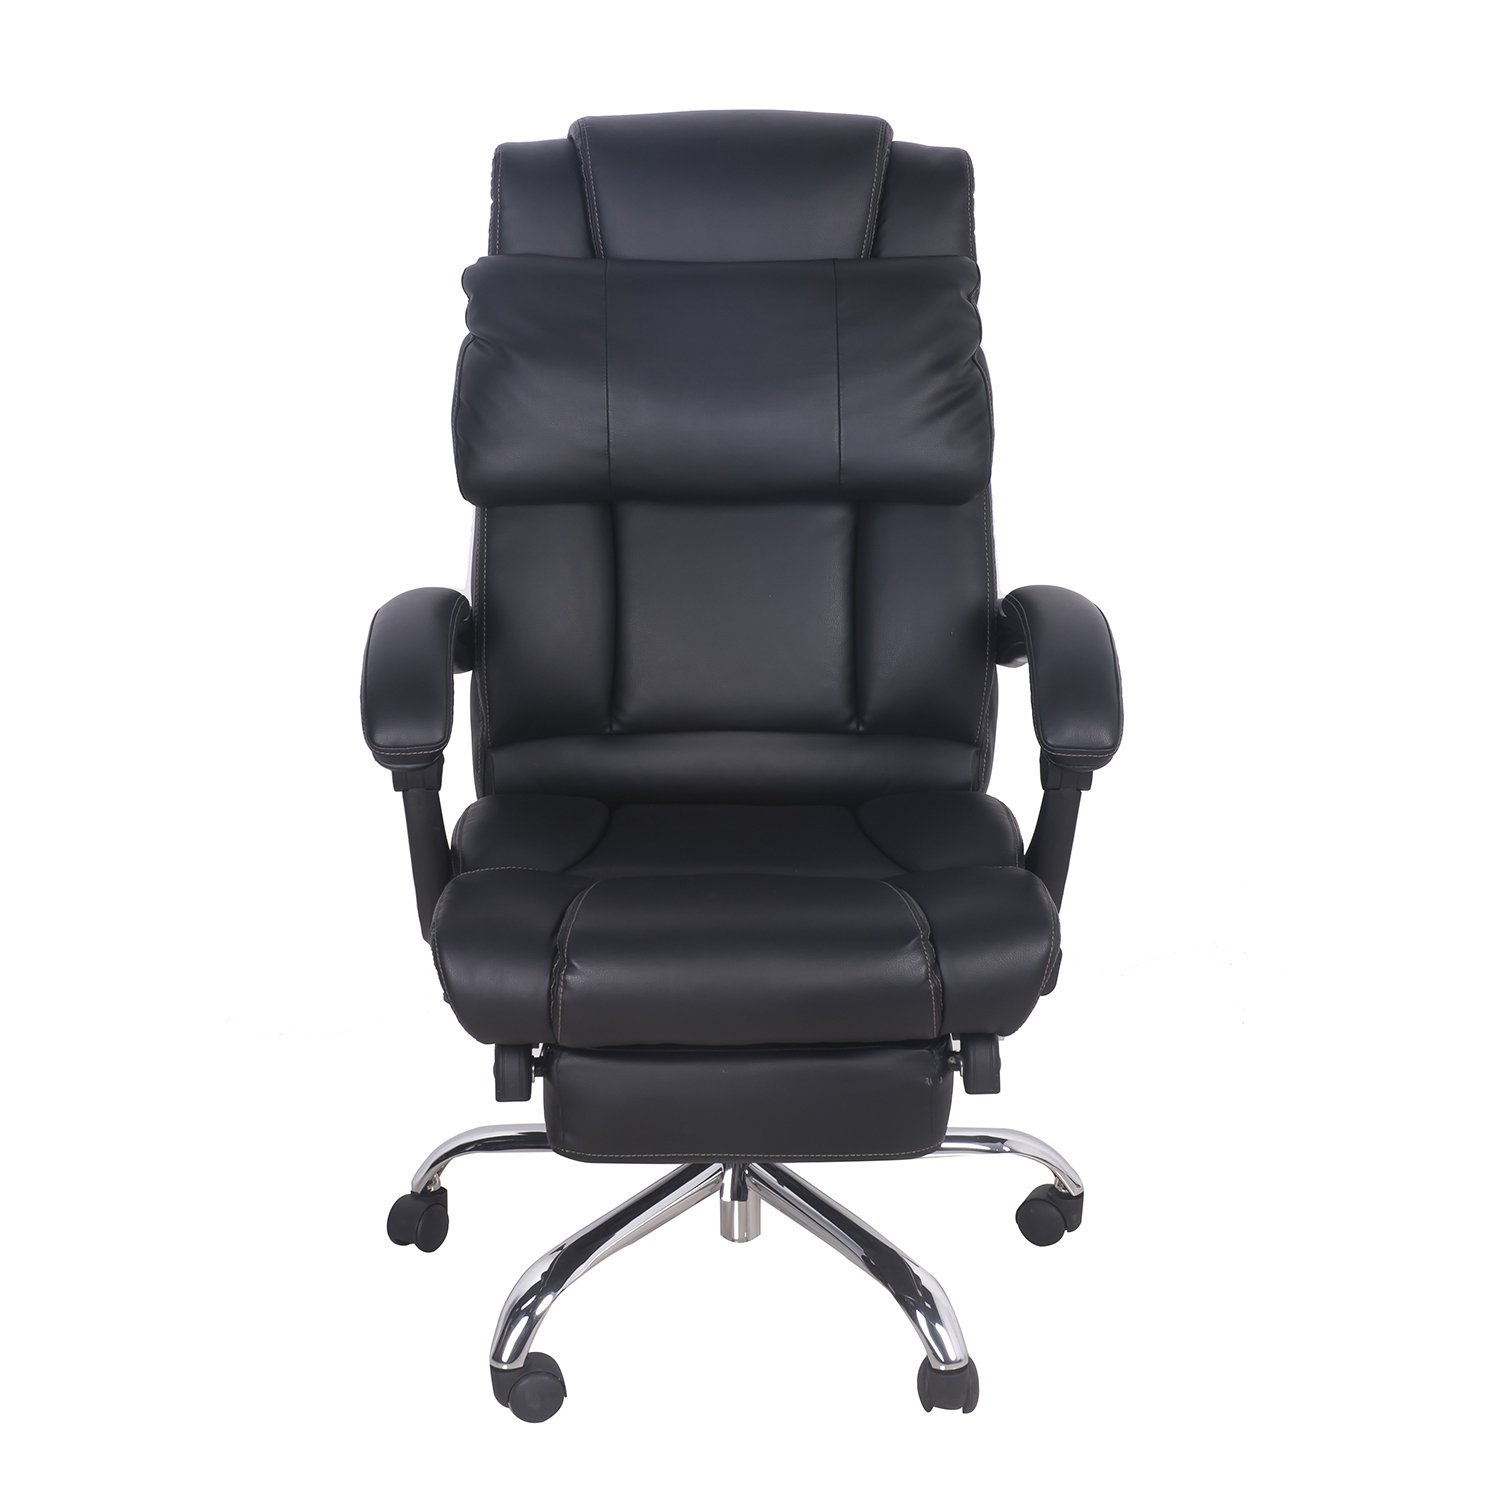 decorating office of desk recliner with reclining ideas ottoman on budget chair a